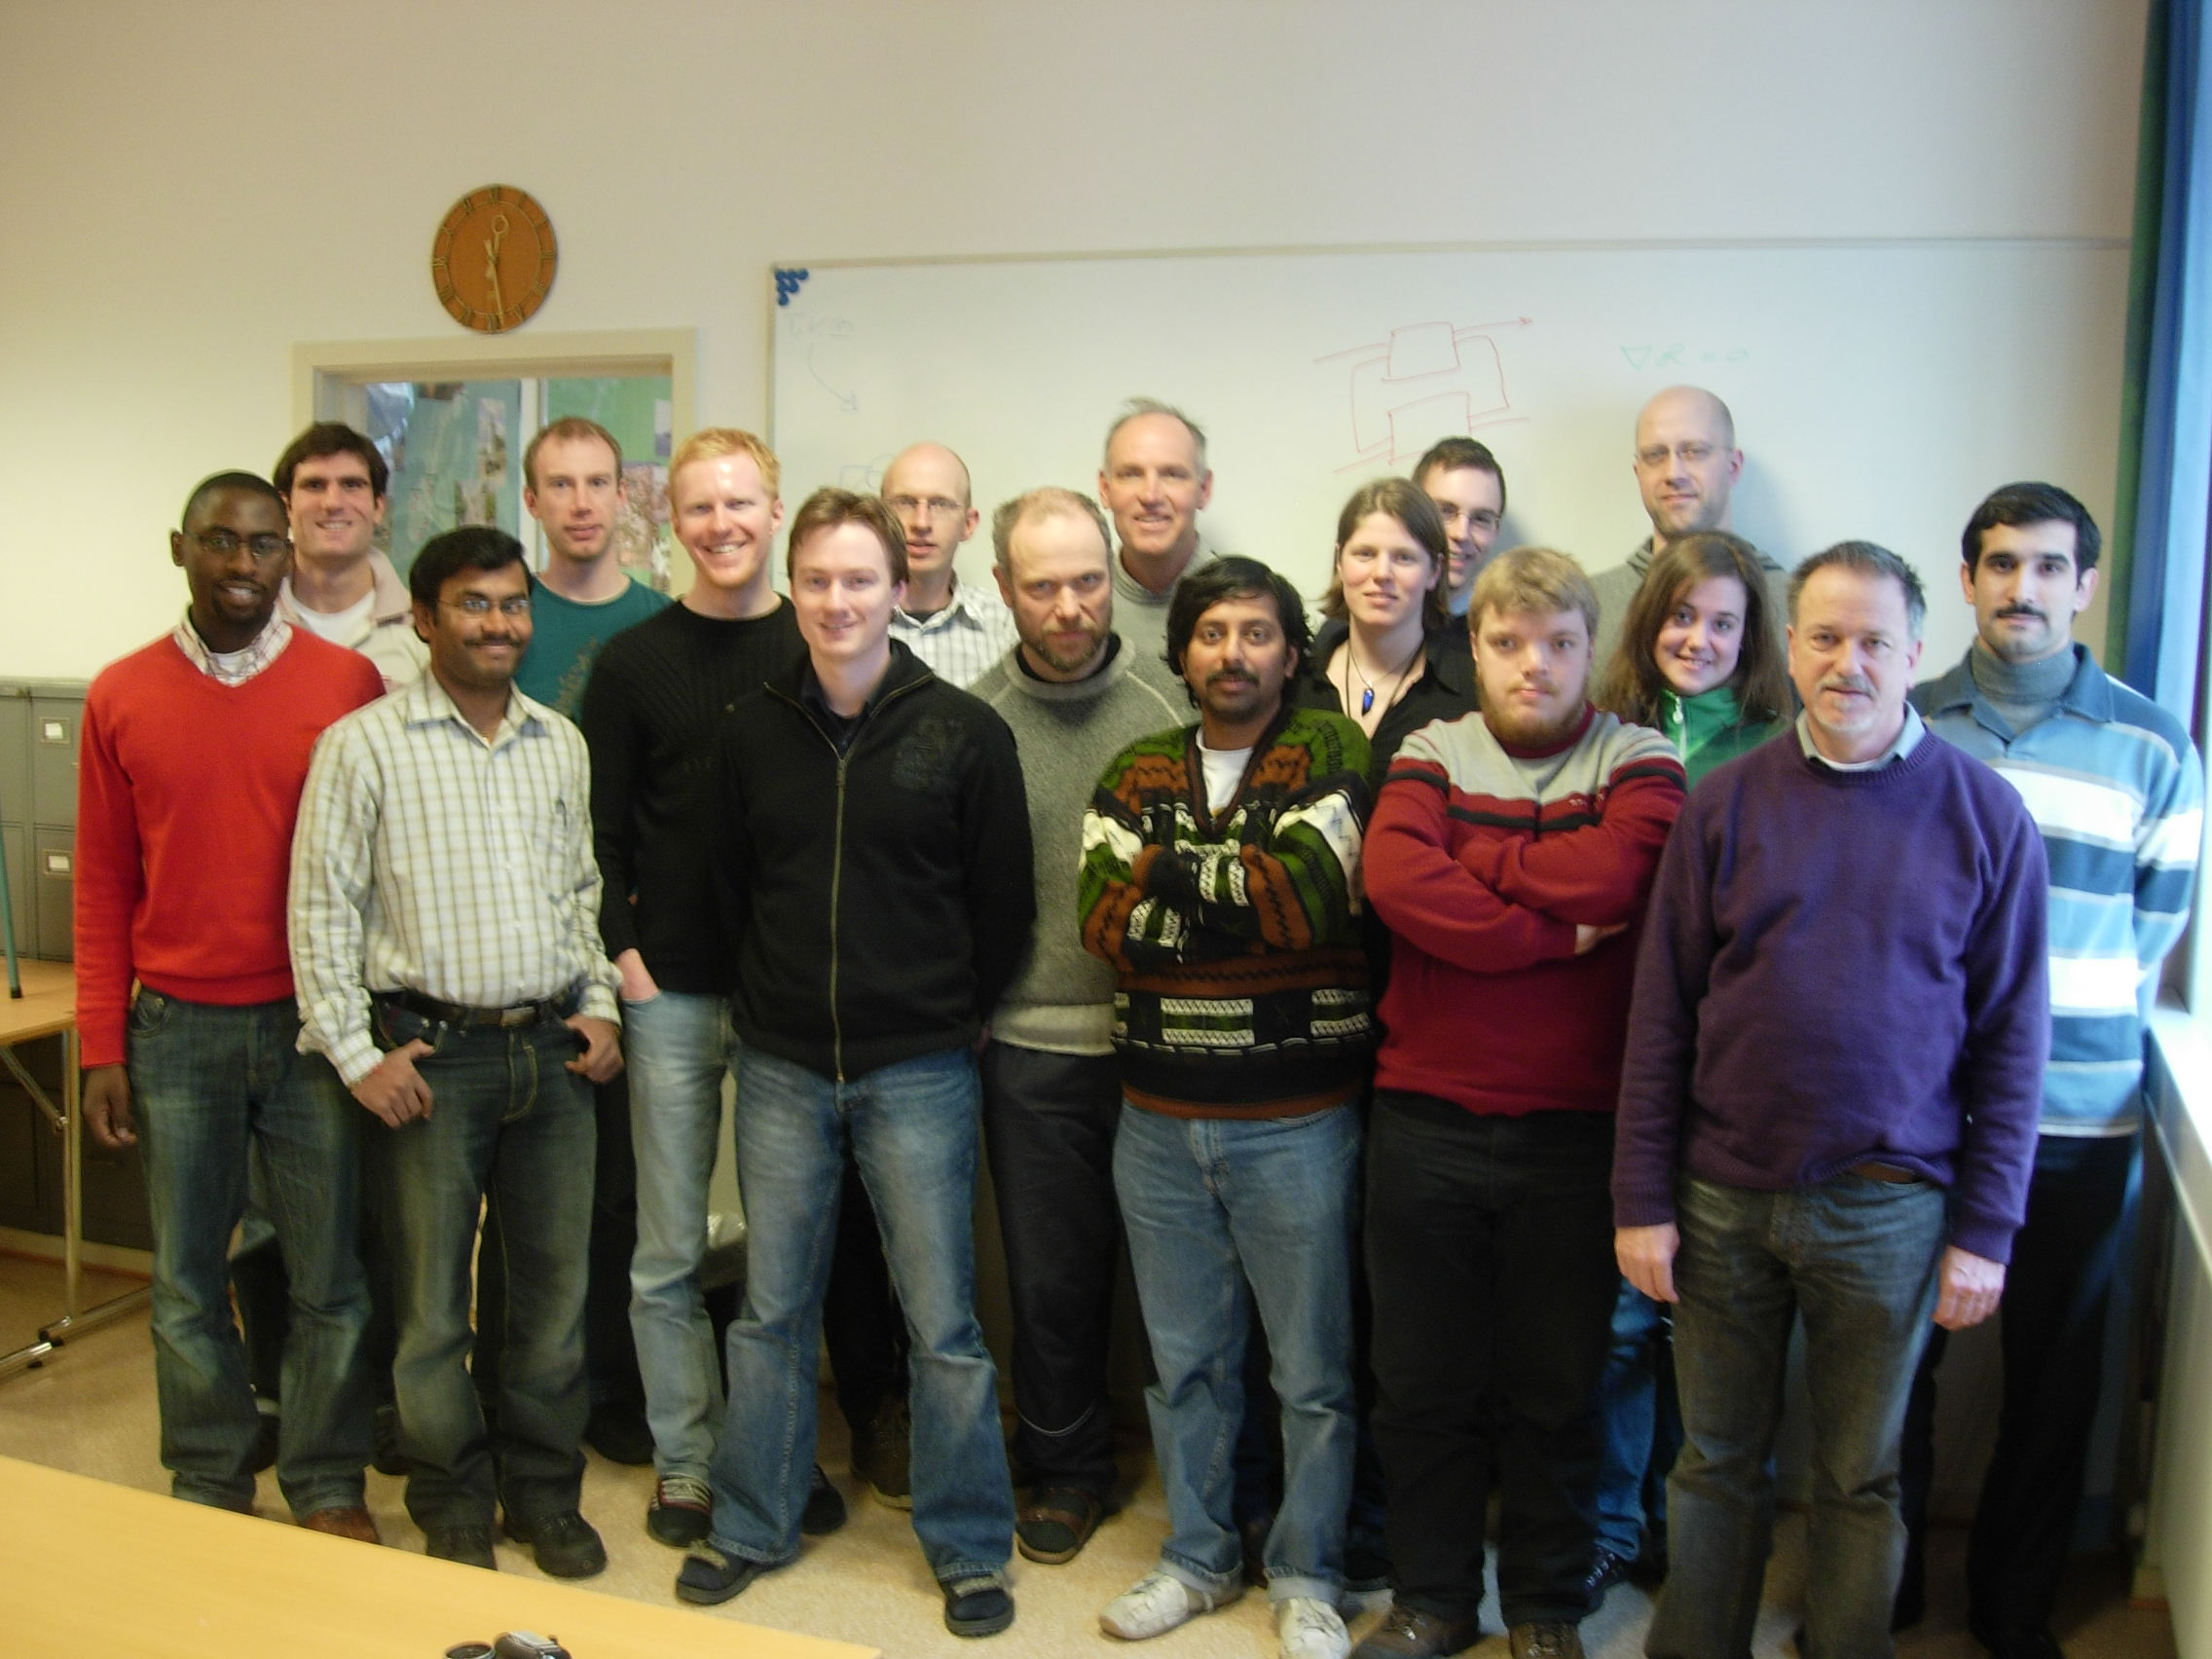 [Process systems group picture February 2008: 	From left: Theo, Ivan, Ramprasad, Bj�rn Tore, Henrik, Johannes, Stefan, Tore, Sigurd, Sridhar, Elvira, Helge, Magnus, Olaf, Tone, Heinz, and Mehdi]